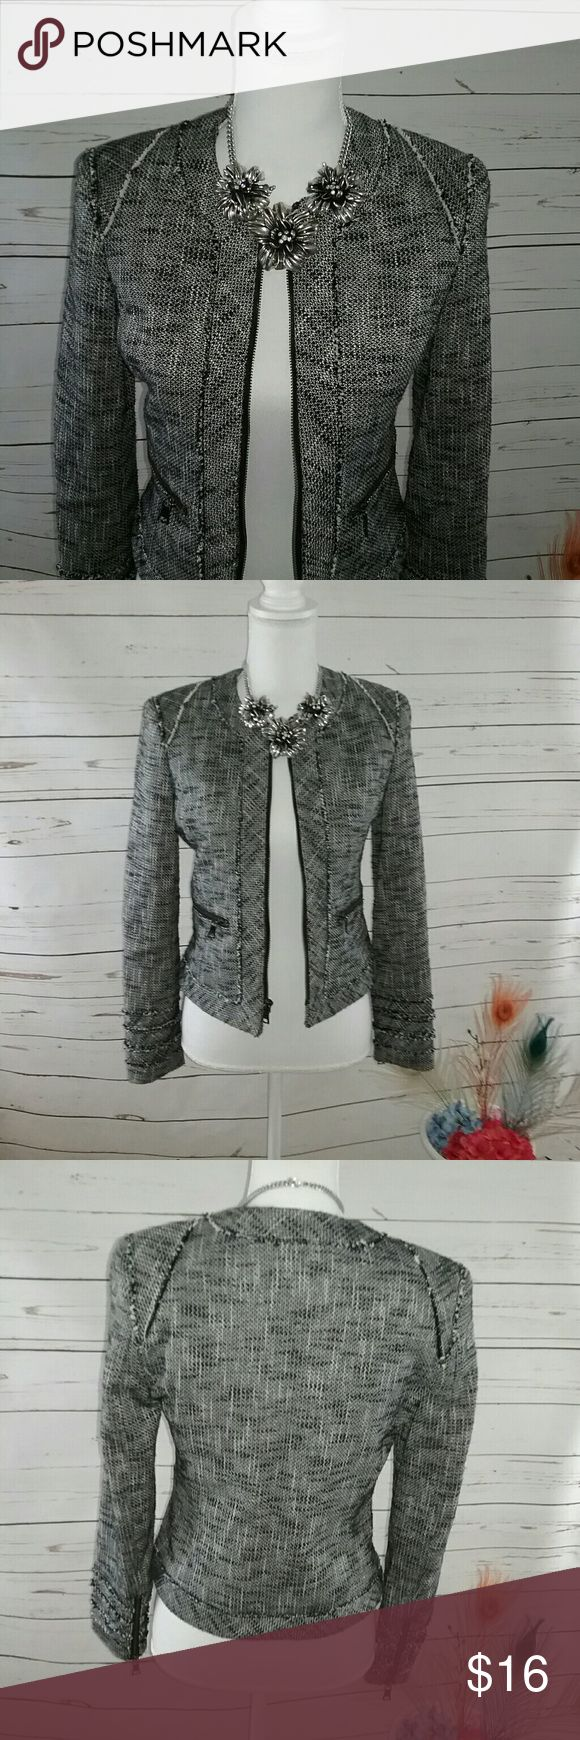 Banana Republic Black Tweed Jacket Blazer 2P This is a lovely Banana Republic black tweed jacket Blazer. It is a size 2 P. It is lined. And does have zipper detail at Pockets sleeves and down the front of the jacket. It is in great preowned condition sold without flaws or stains Banana Republic Jackets & Coats Blazers